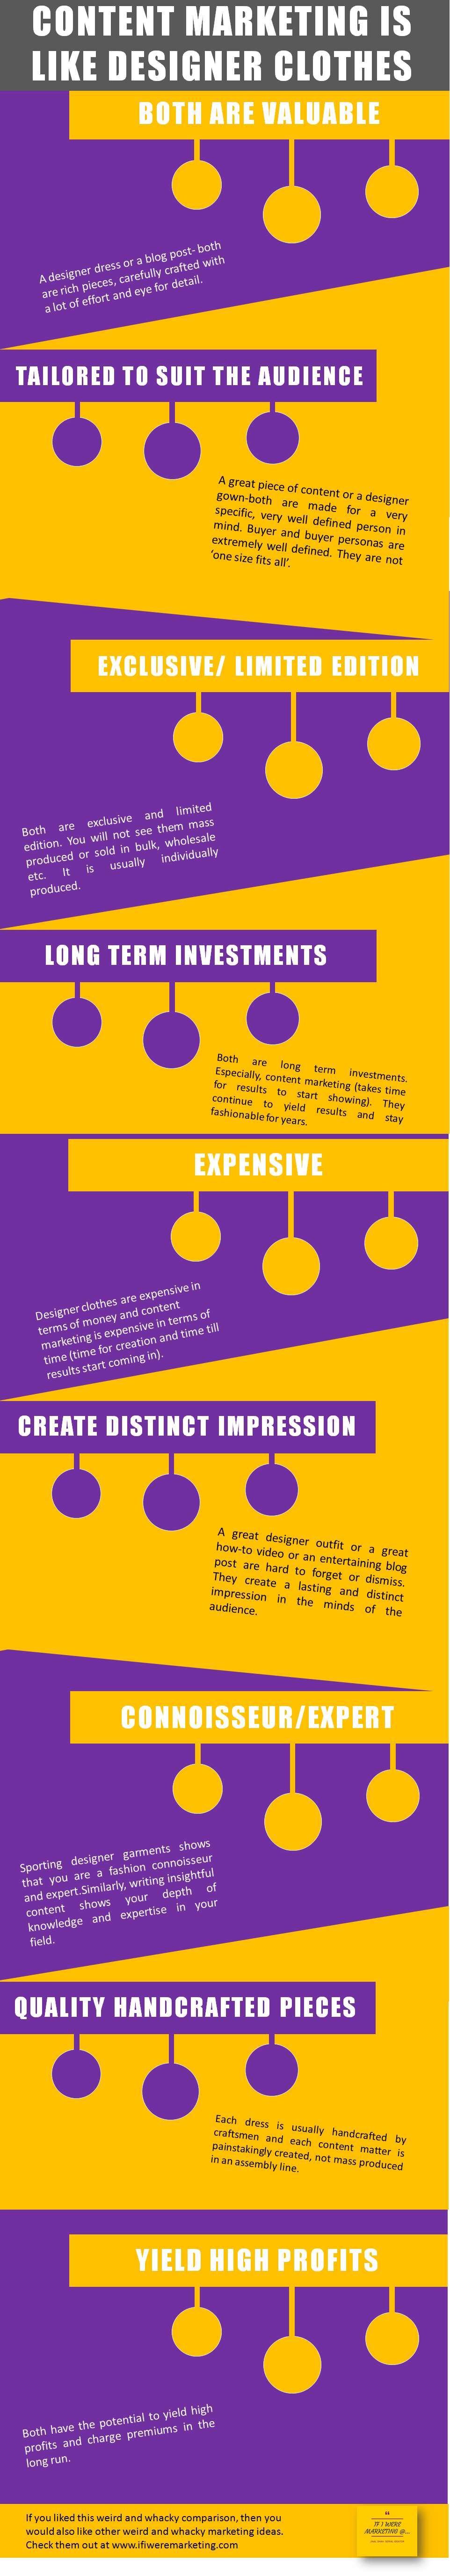 content marketing is like designer clothes-infographic-www.ifiweremarketing.com